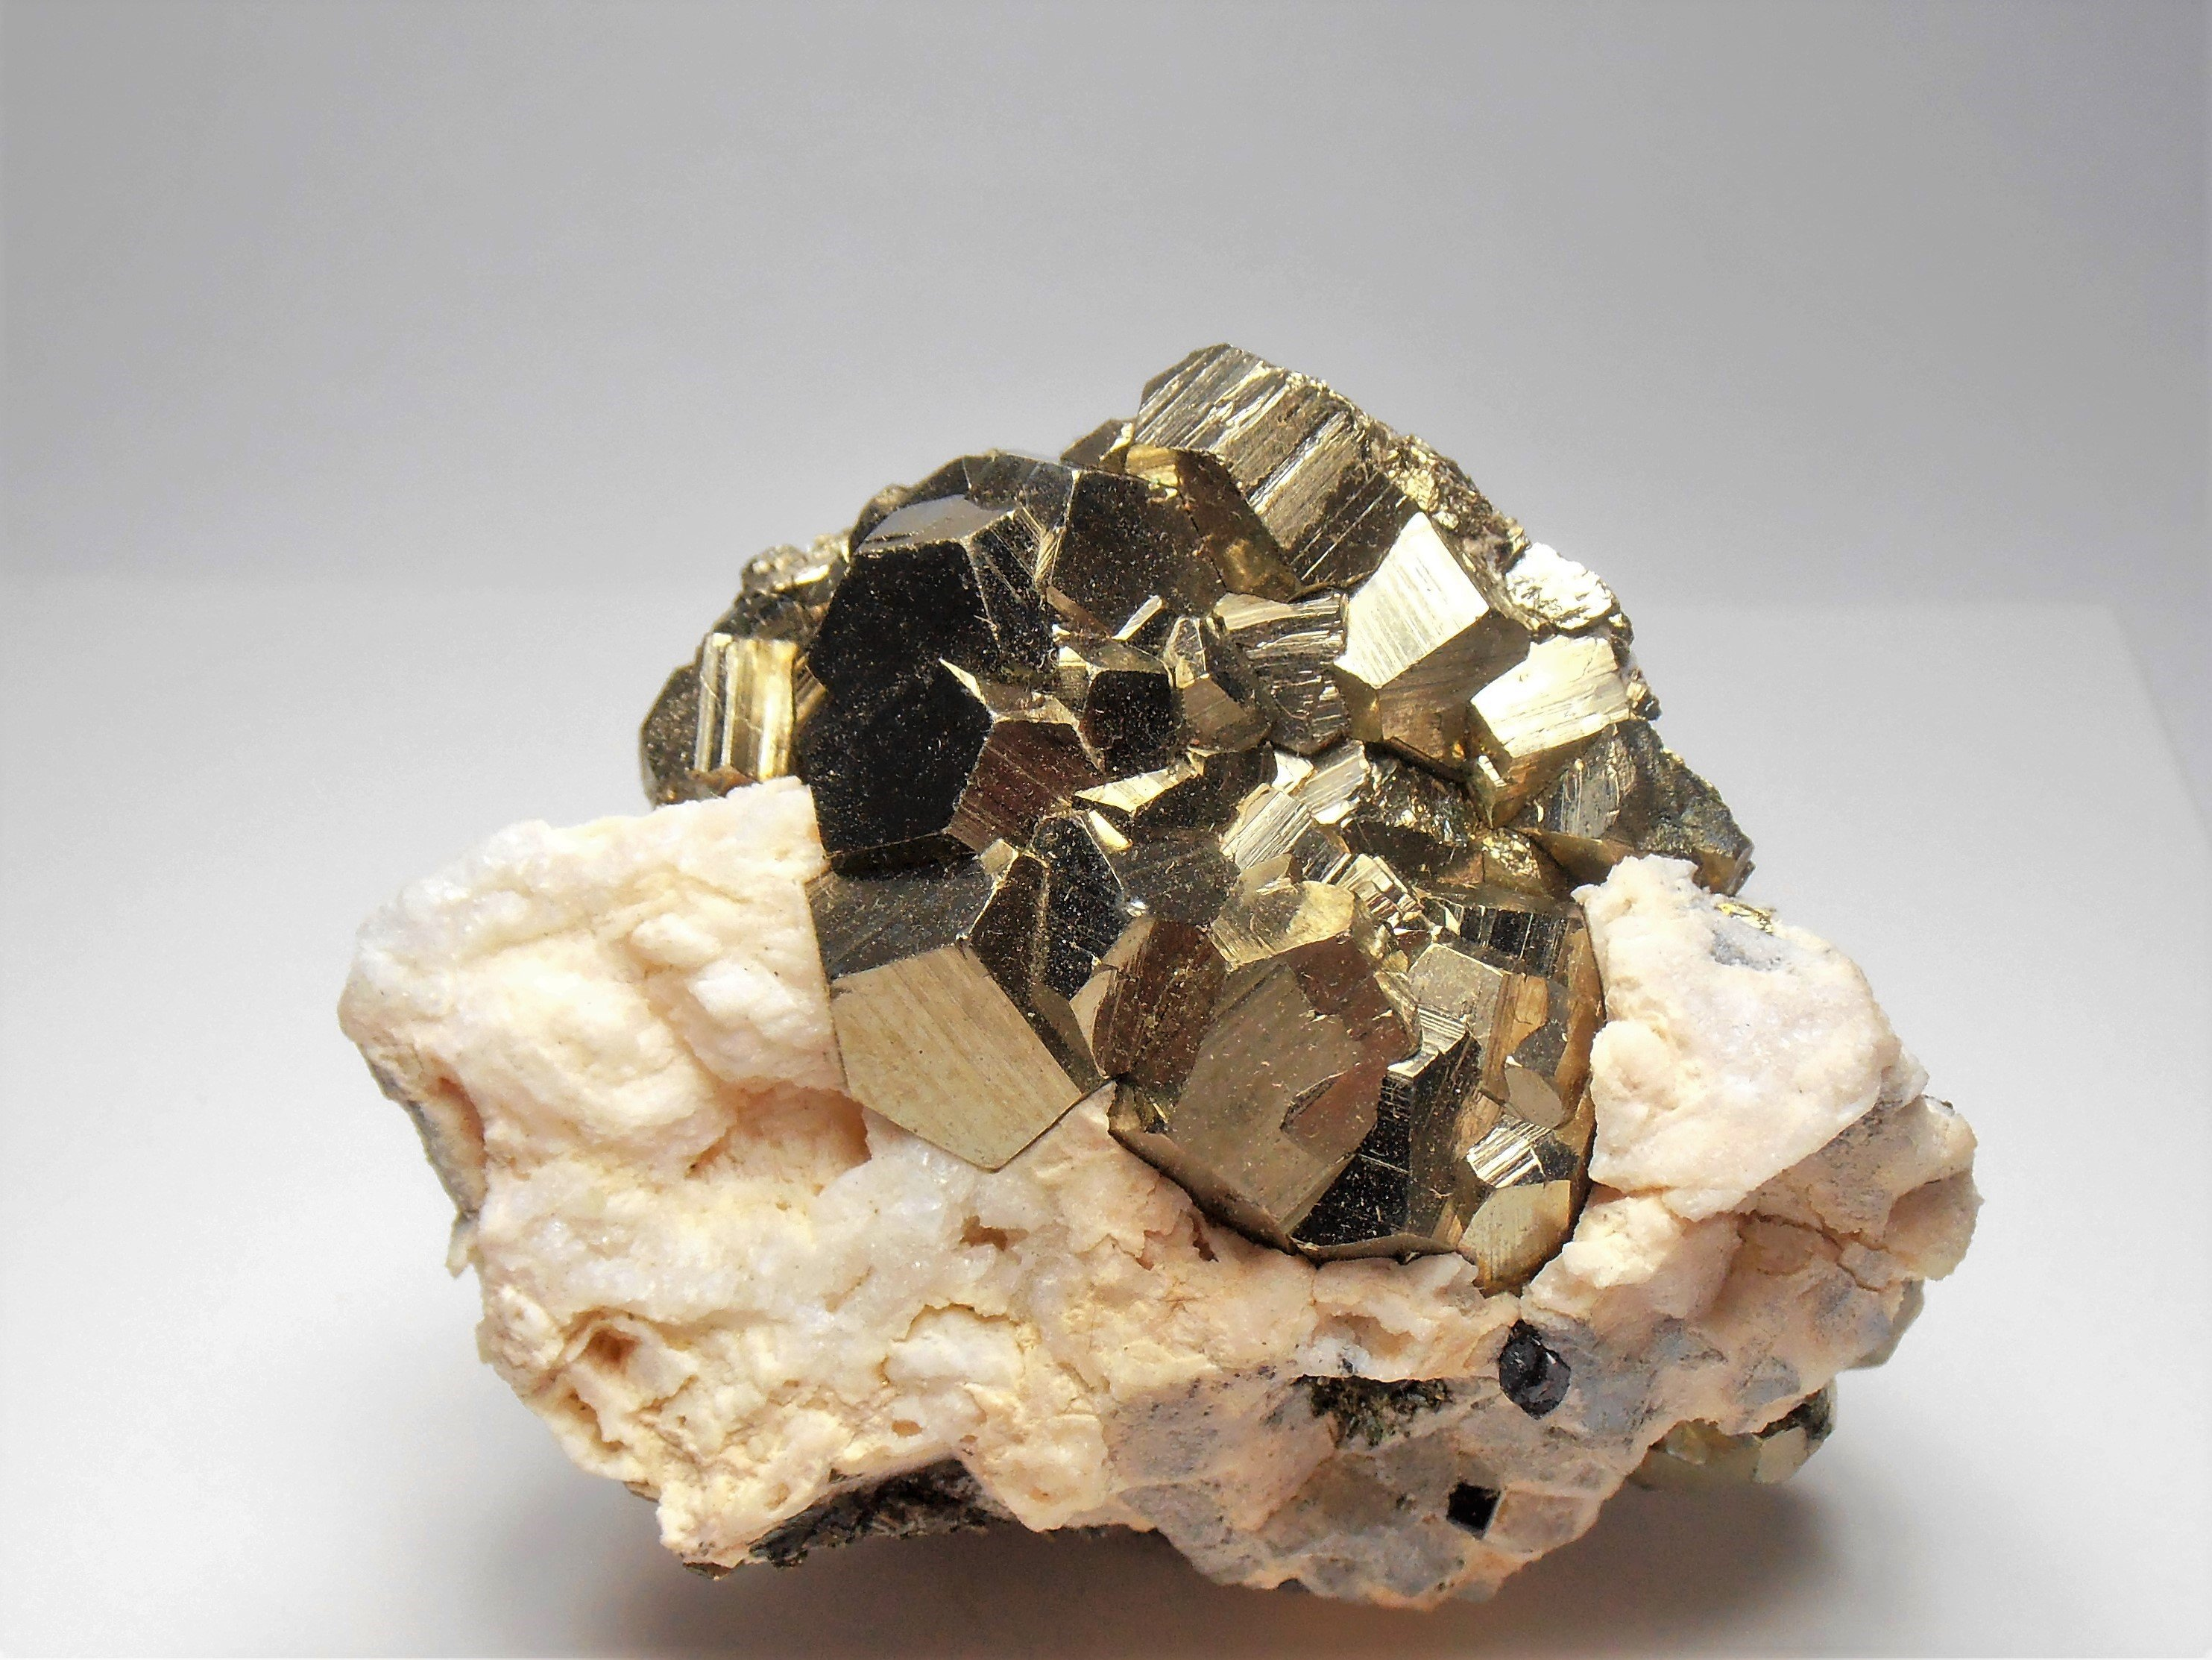 Pyrite from the Huaron Mining District in the Pasco Department